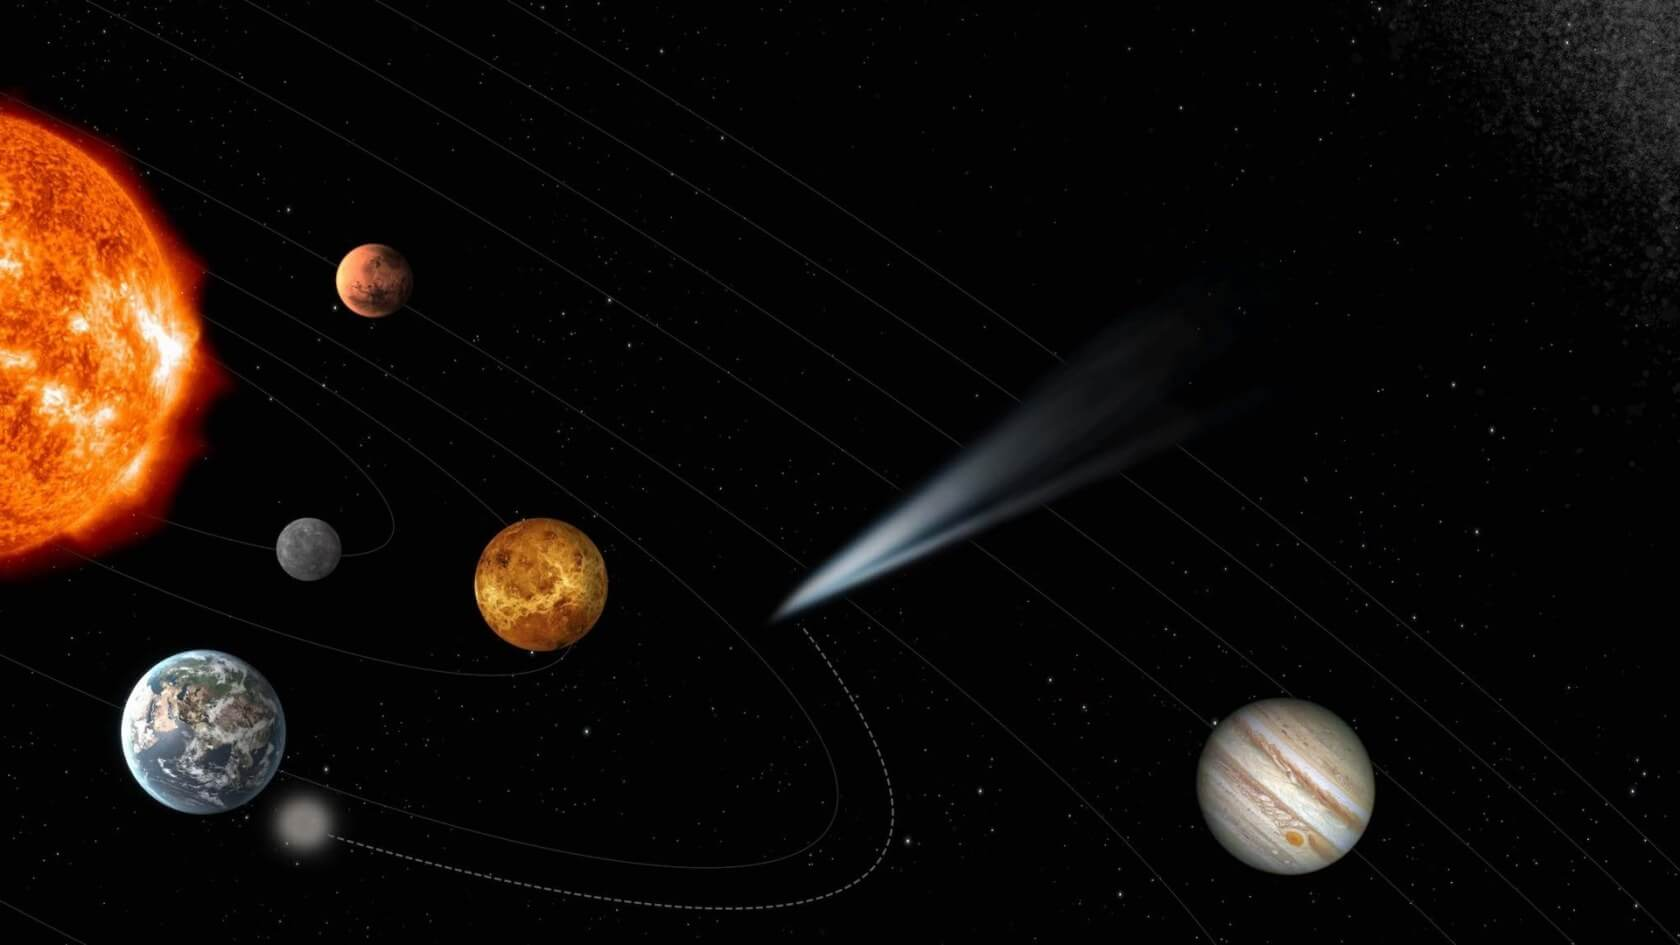 The European Space Agency plans to 'intercept' and photograph a comet from the 'dawn' of our Solar System